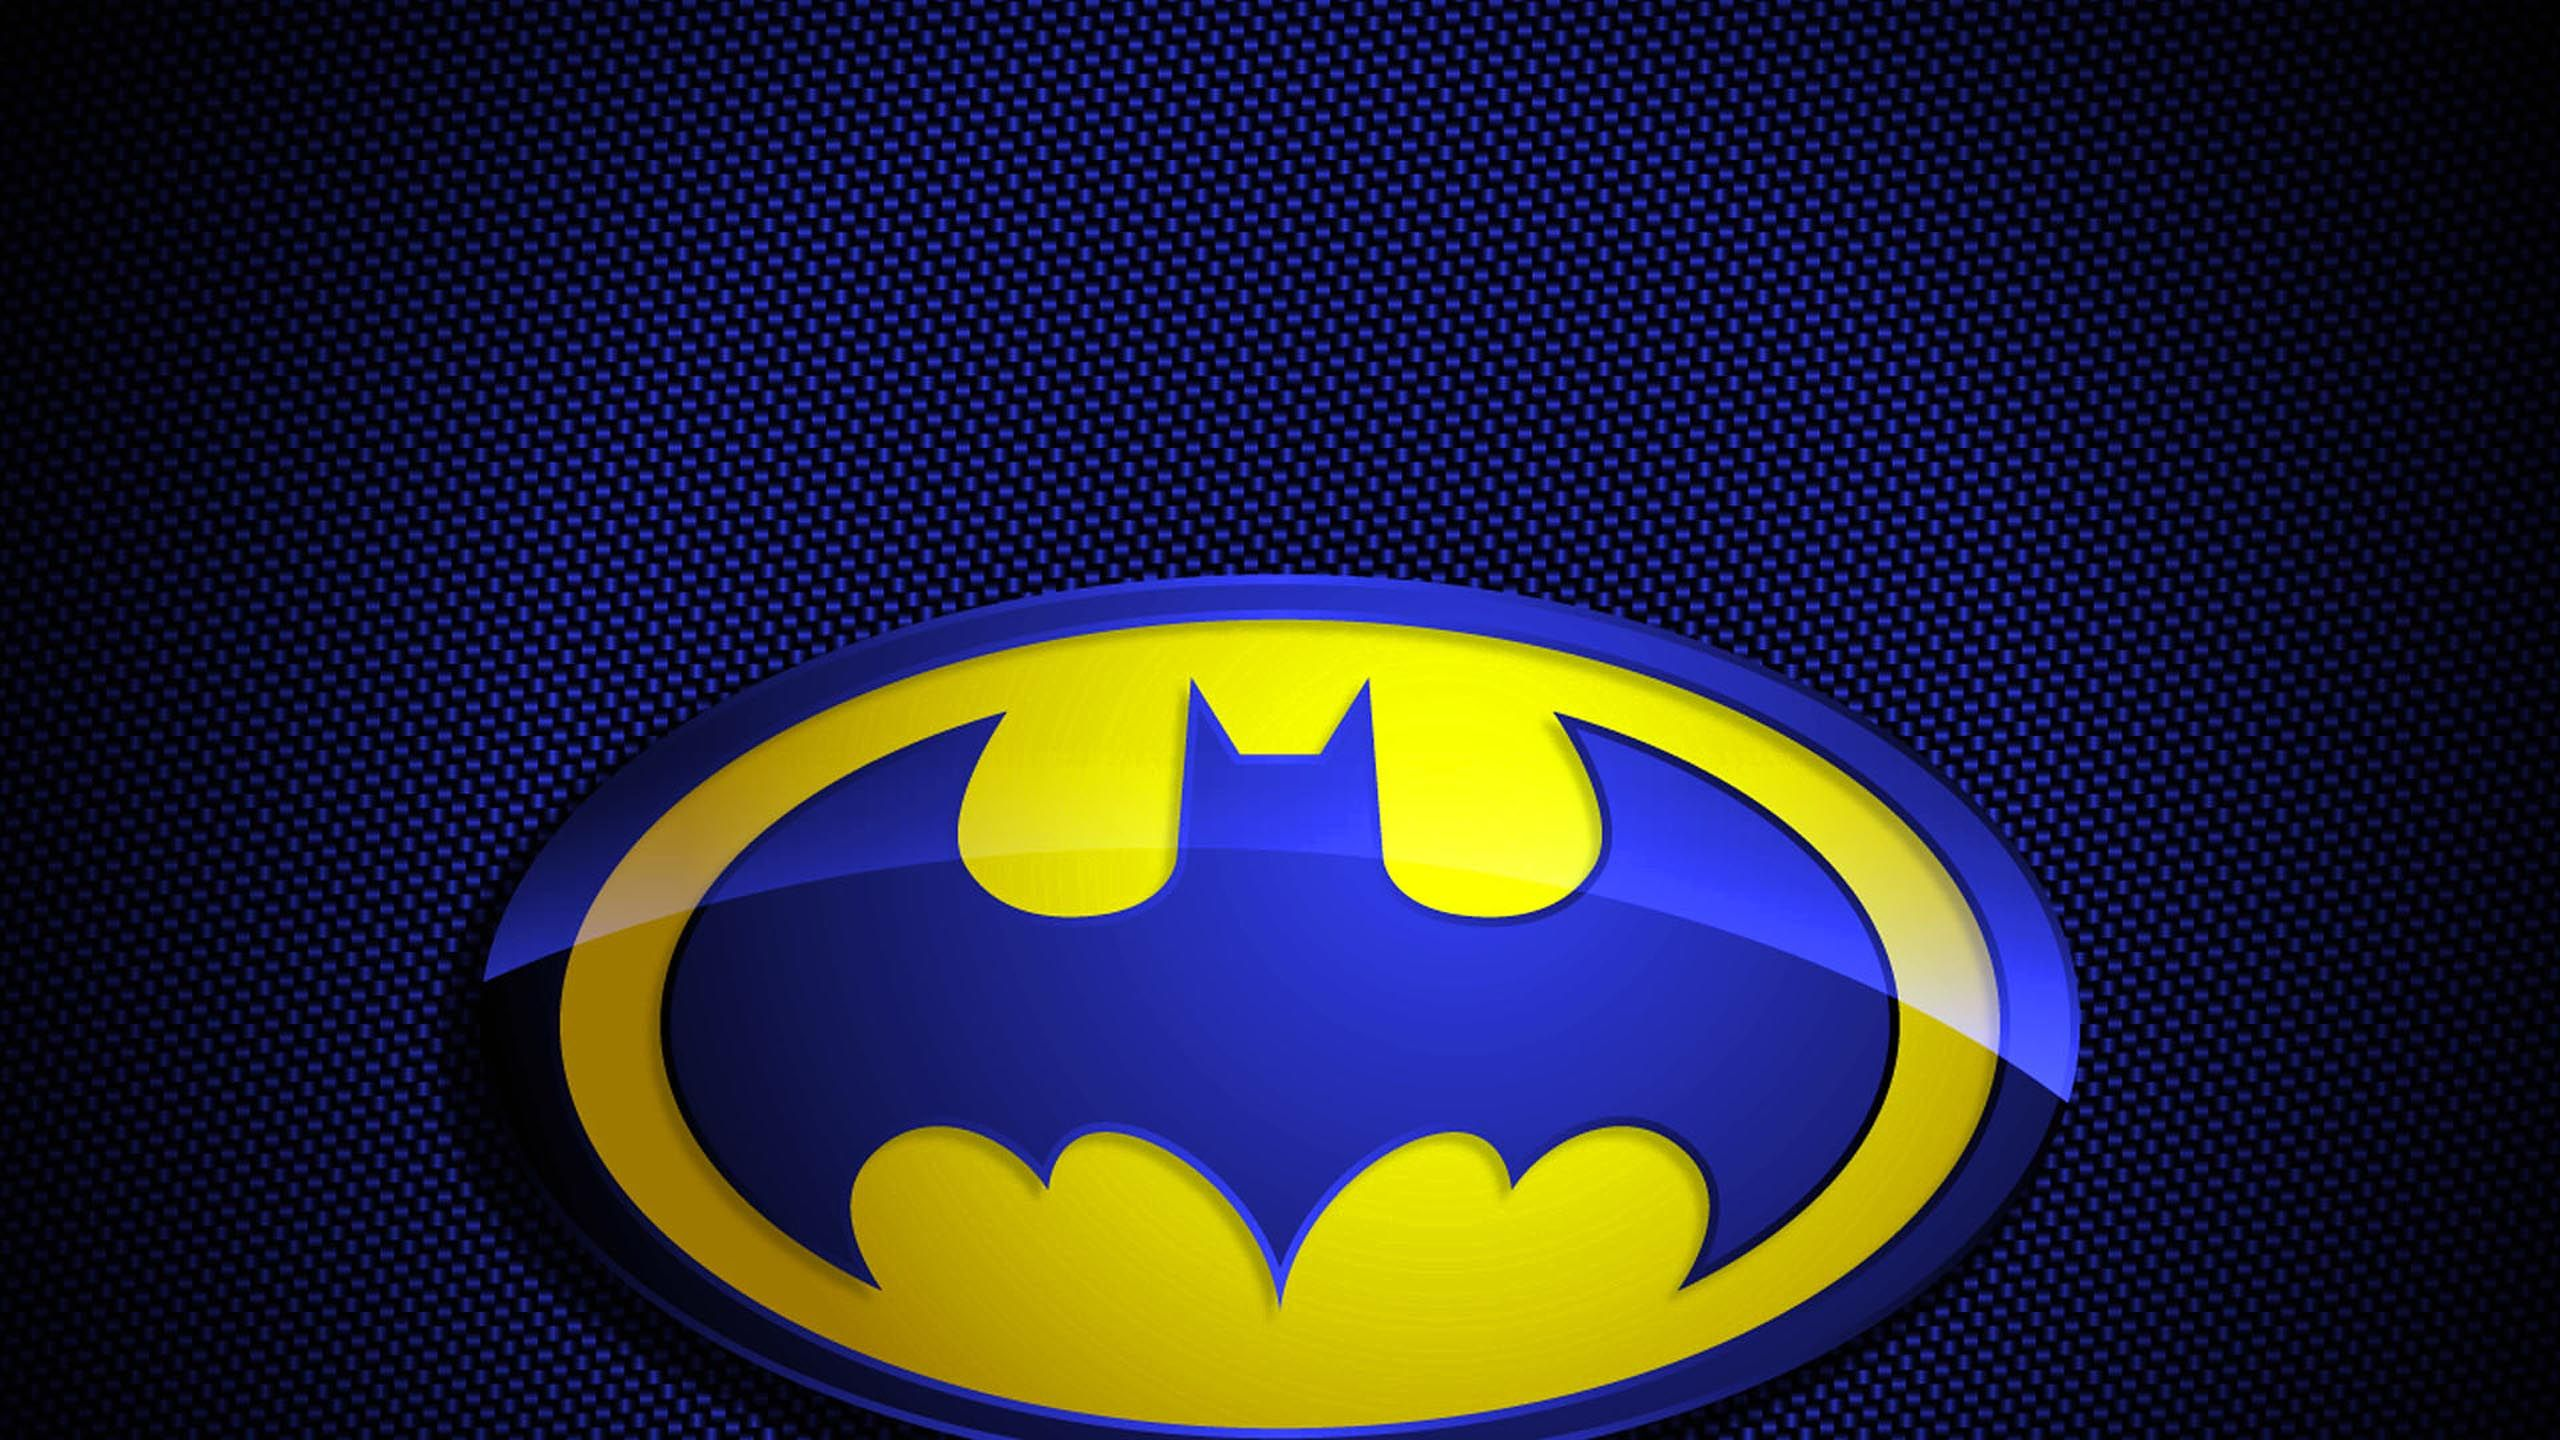 Download Wallpaper Macbook Joker - 82173a672a1945aff05cfb255bfbfe13  Perfect Image Reference_632974.jpg